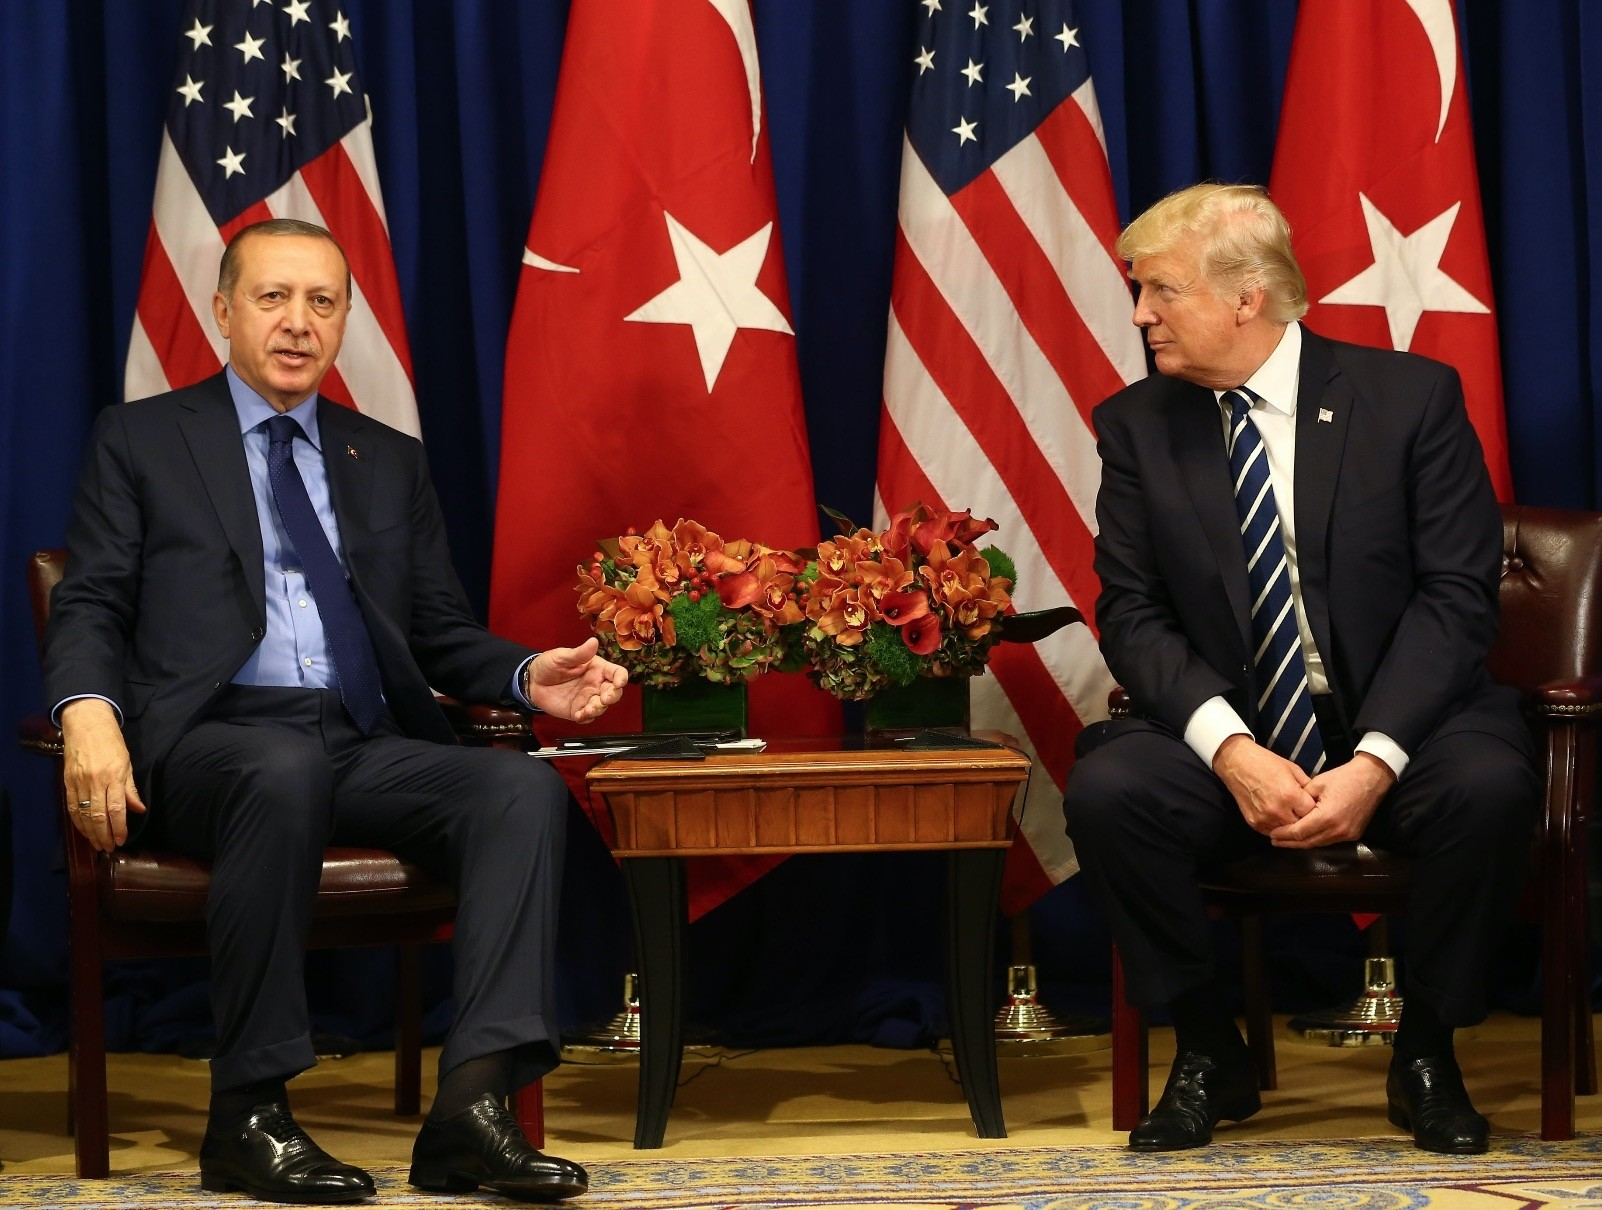 President Erdou011fan with U.S. President Donald Trump during a meeting at the Palace Hotel during the U.N. General Assembly, New York, Sept. 21, 2017.